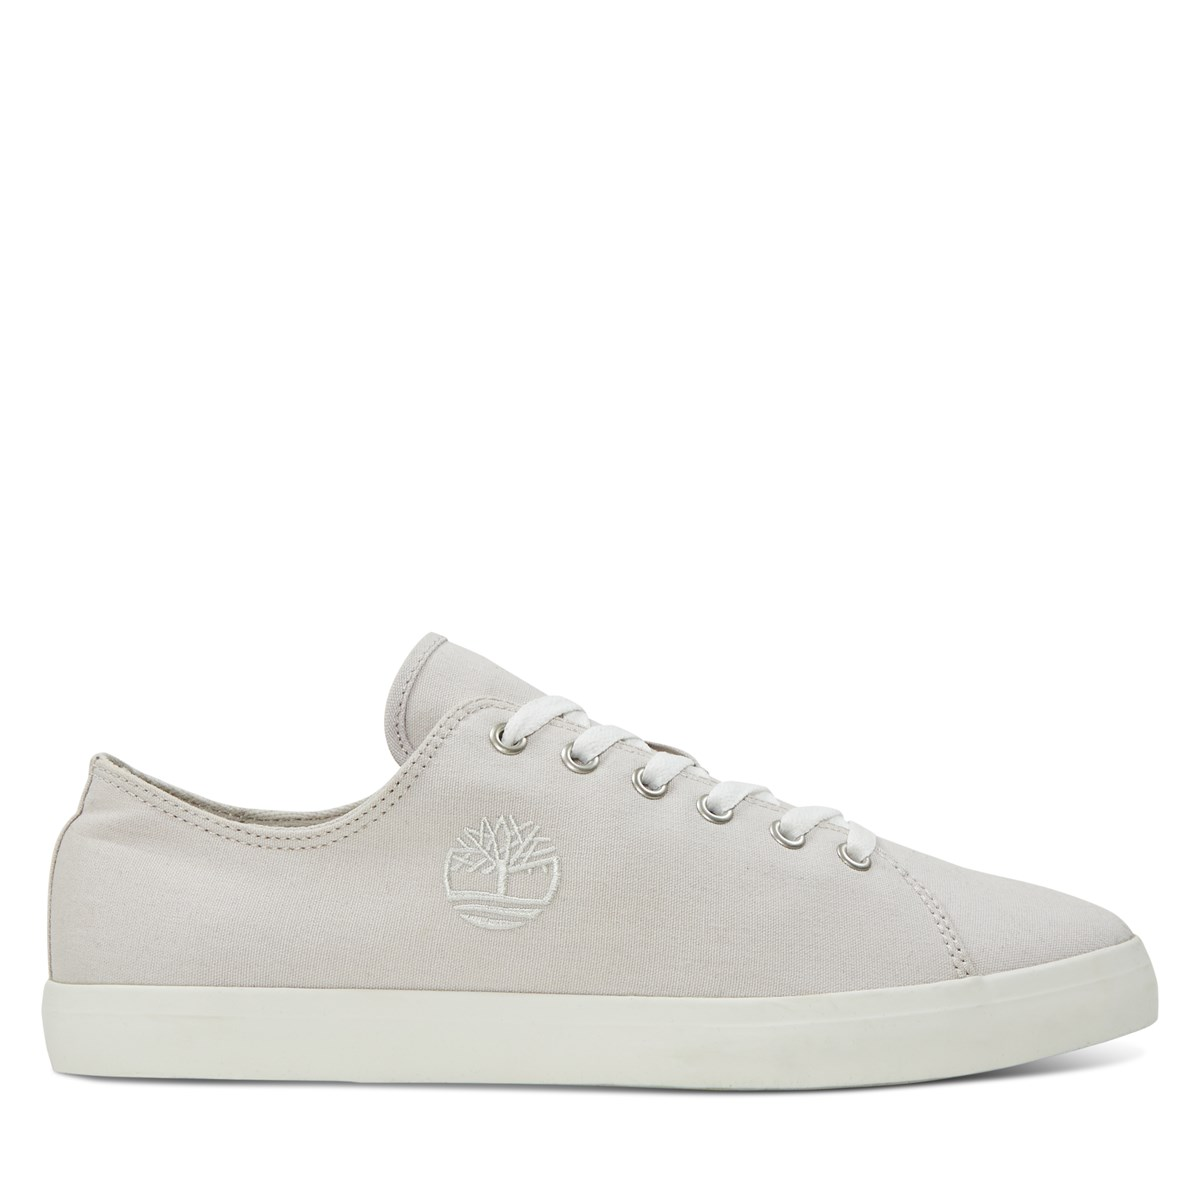 Men's Union Wharf Sneaker in Light Grey